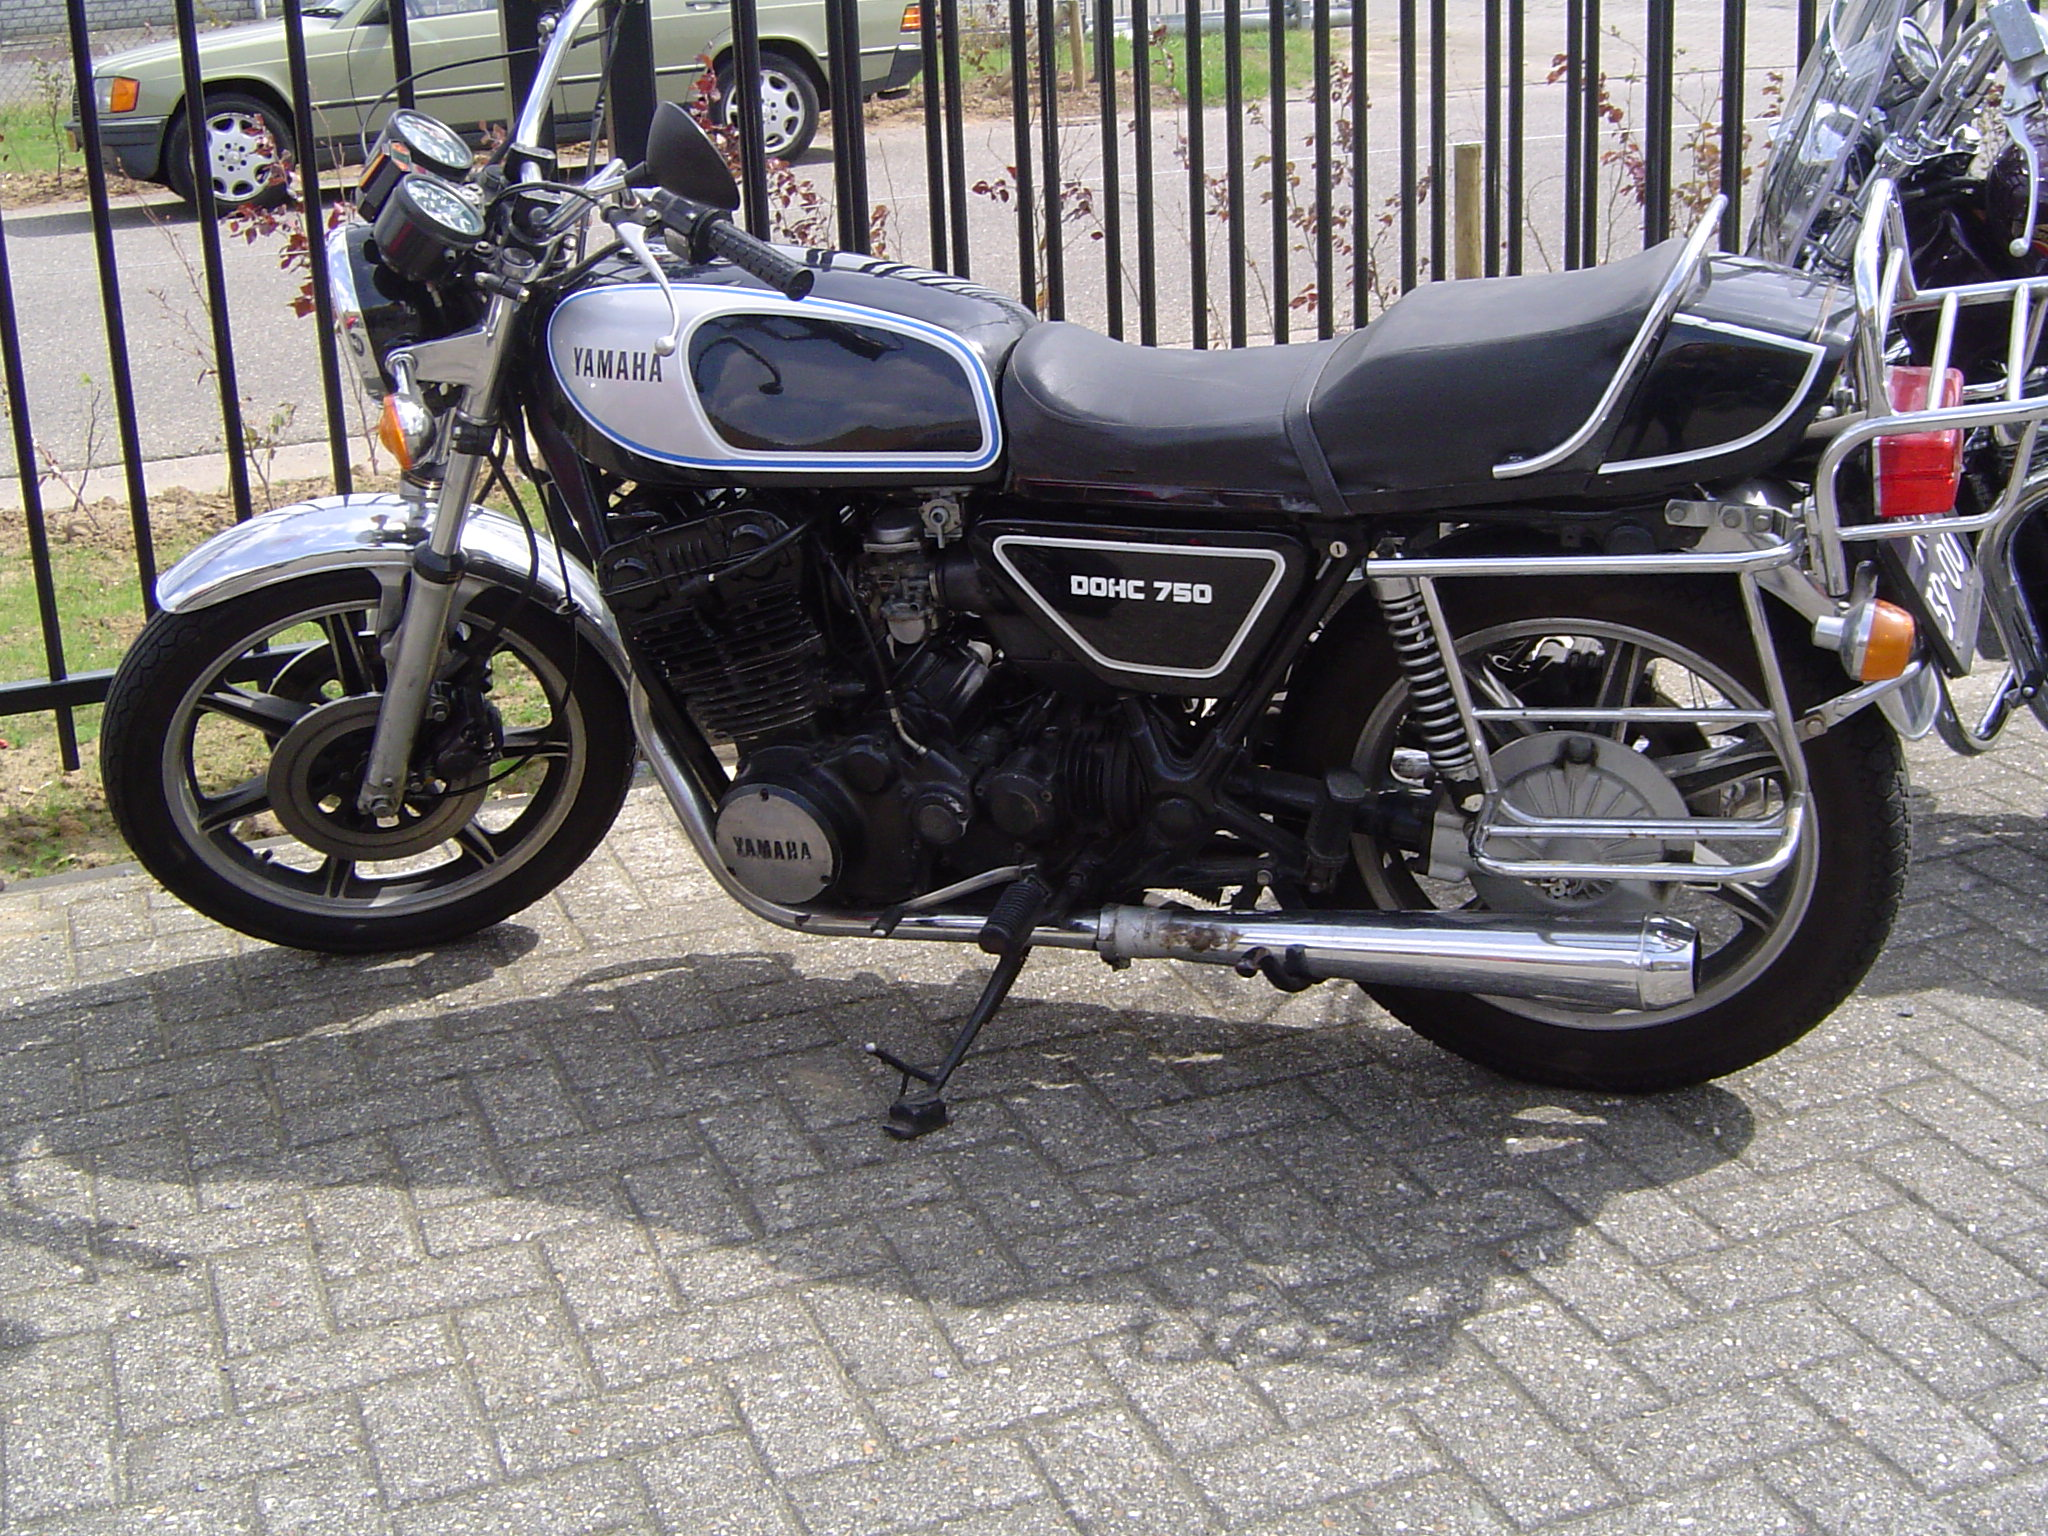 Back Download Yamaha XS 500 picture # 14, size 2048x1536 Next